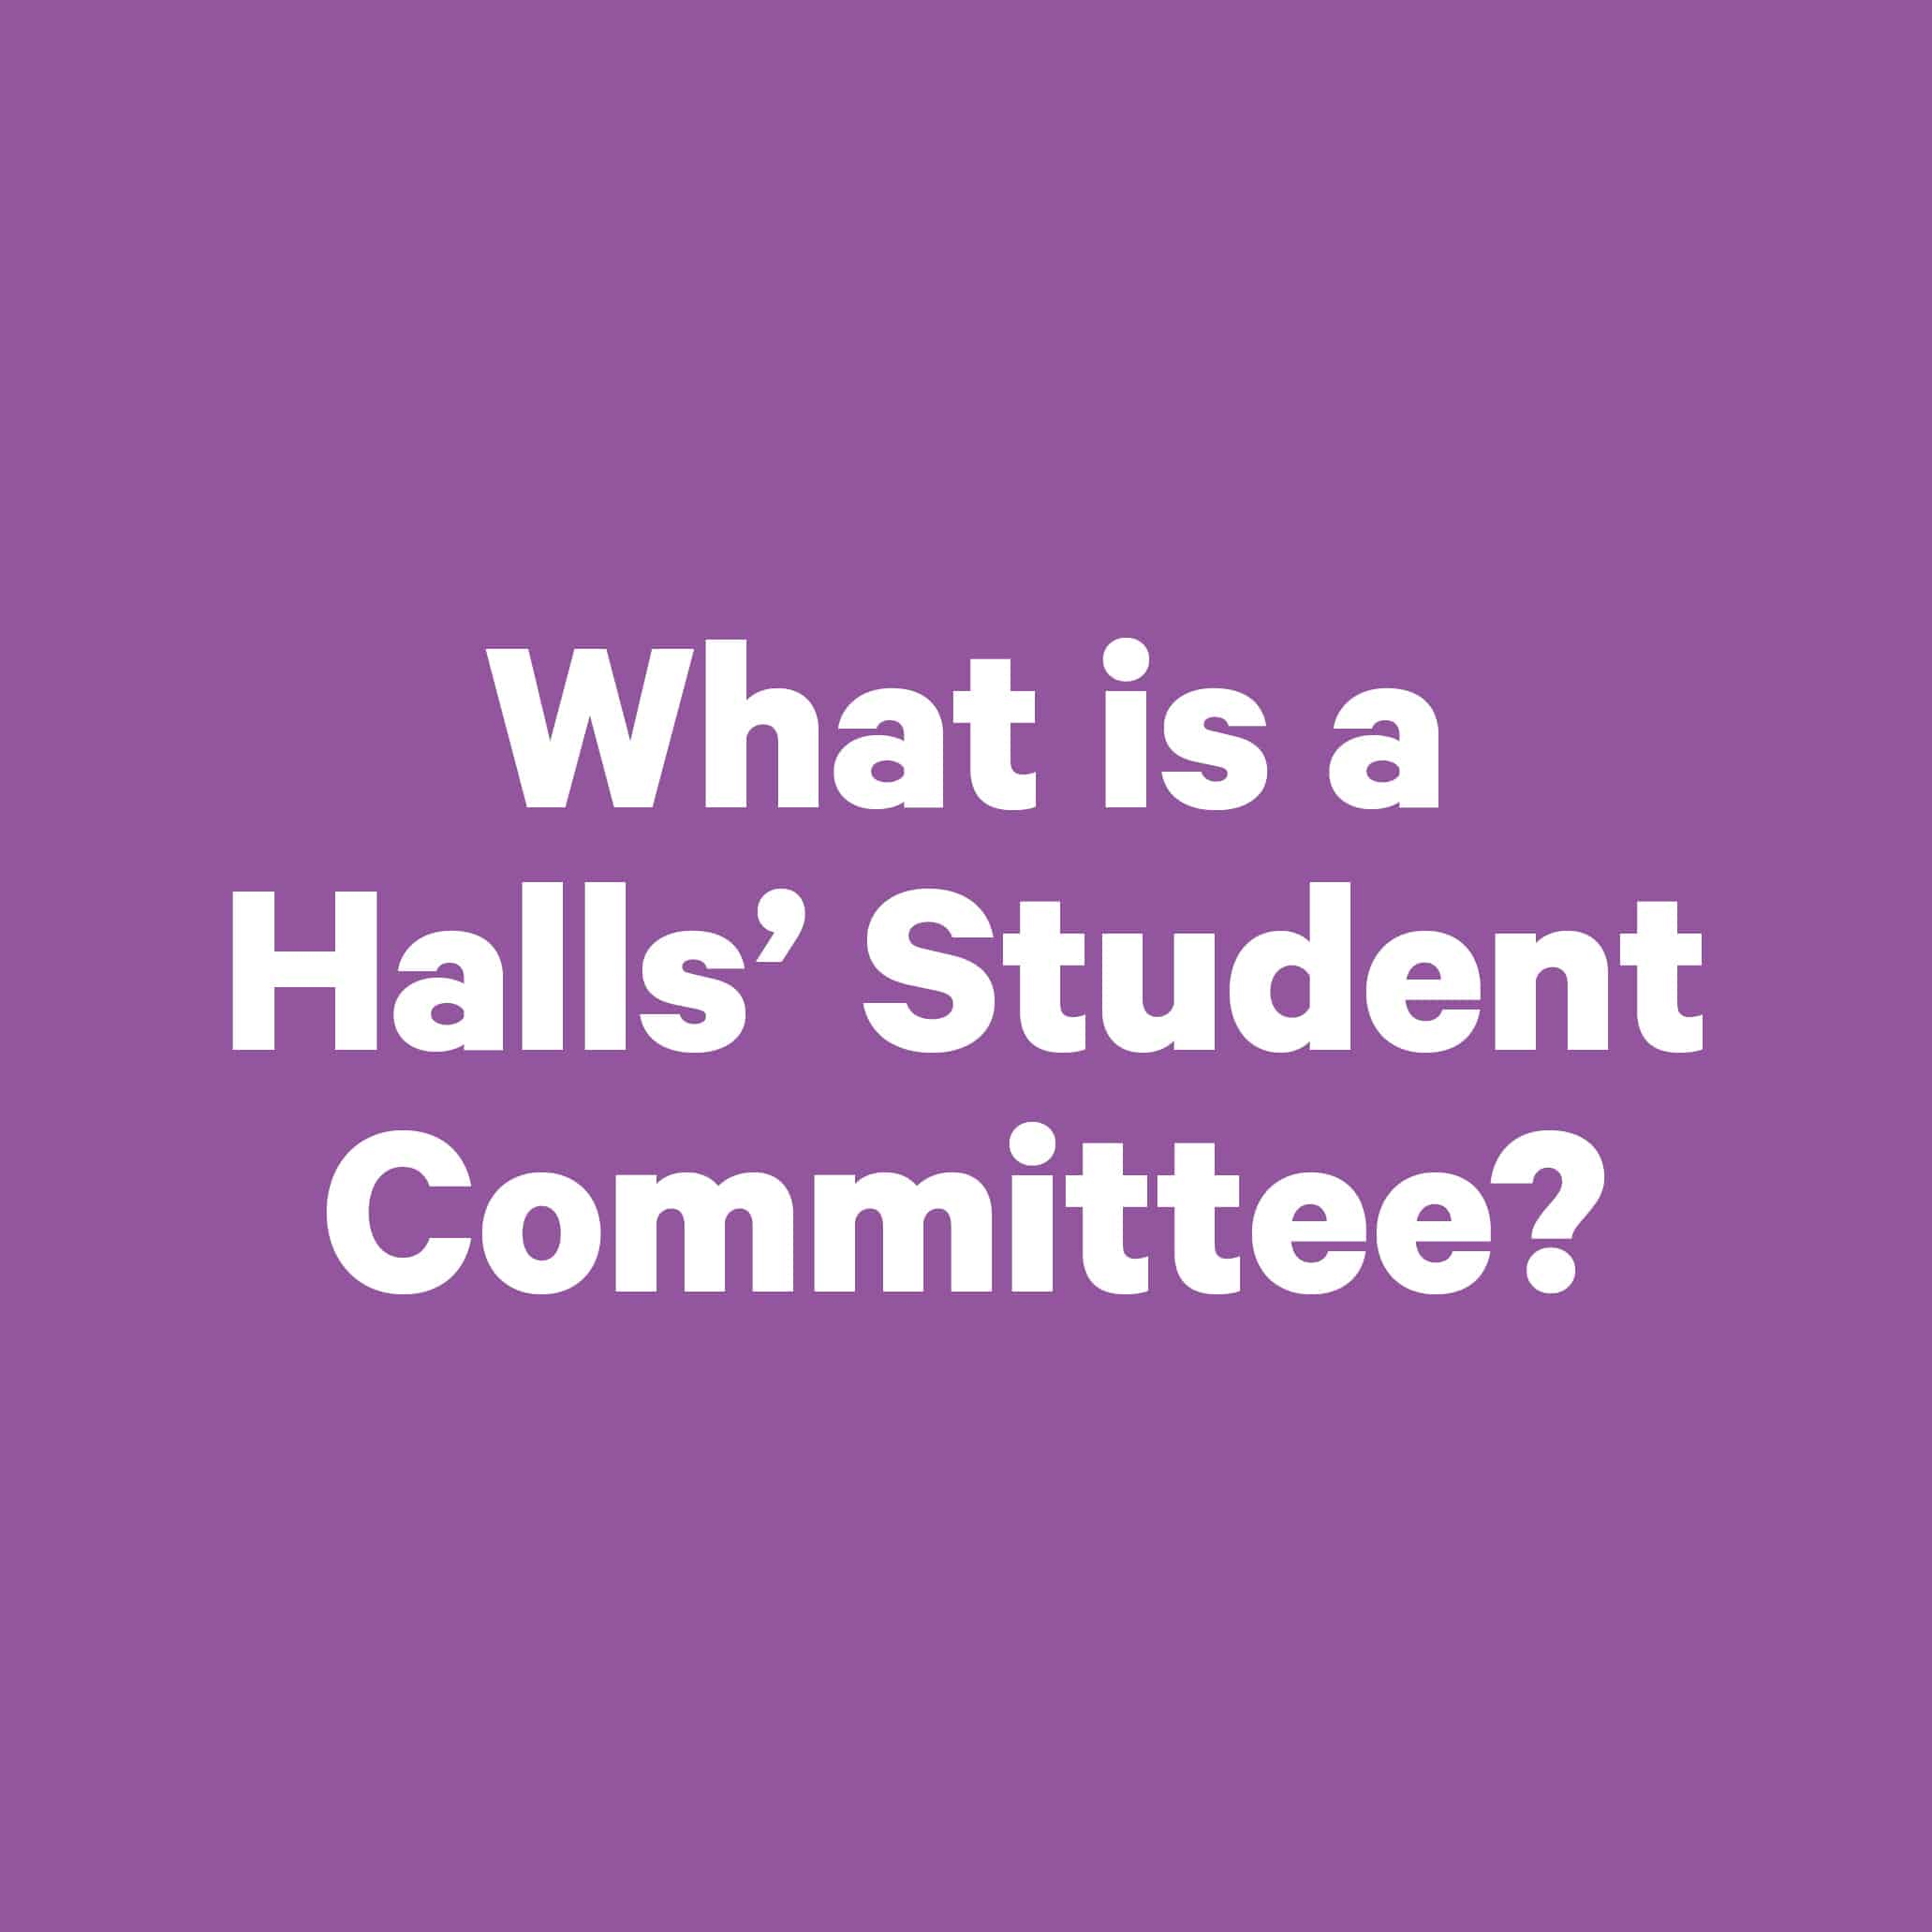 What is a halls student Committee